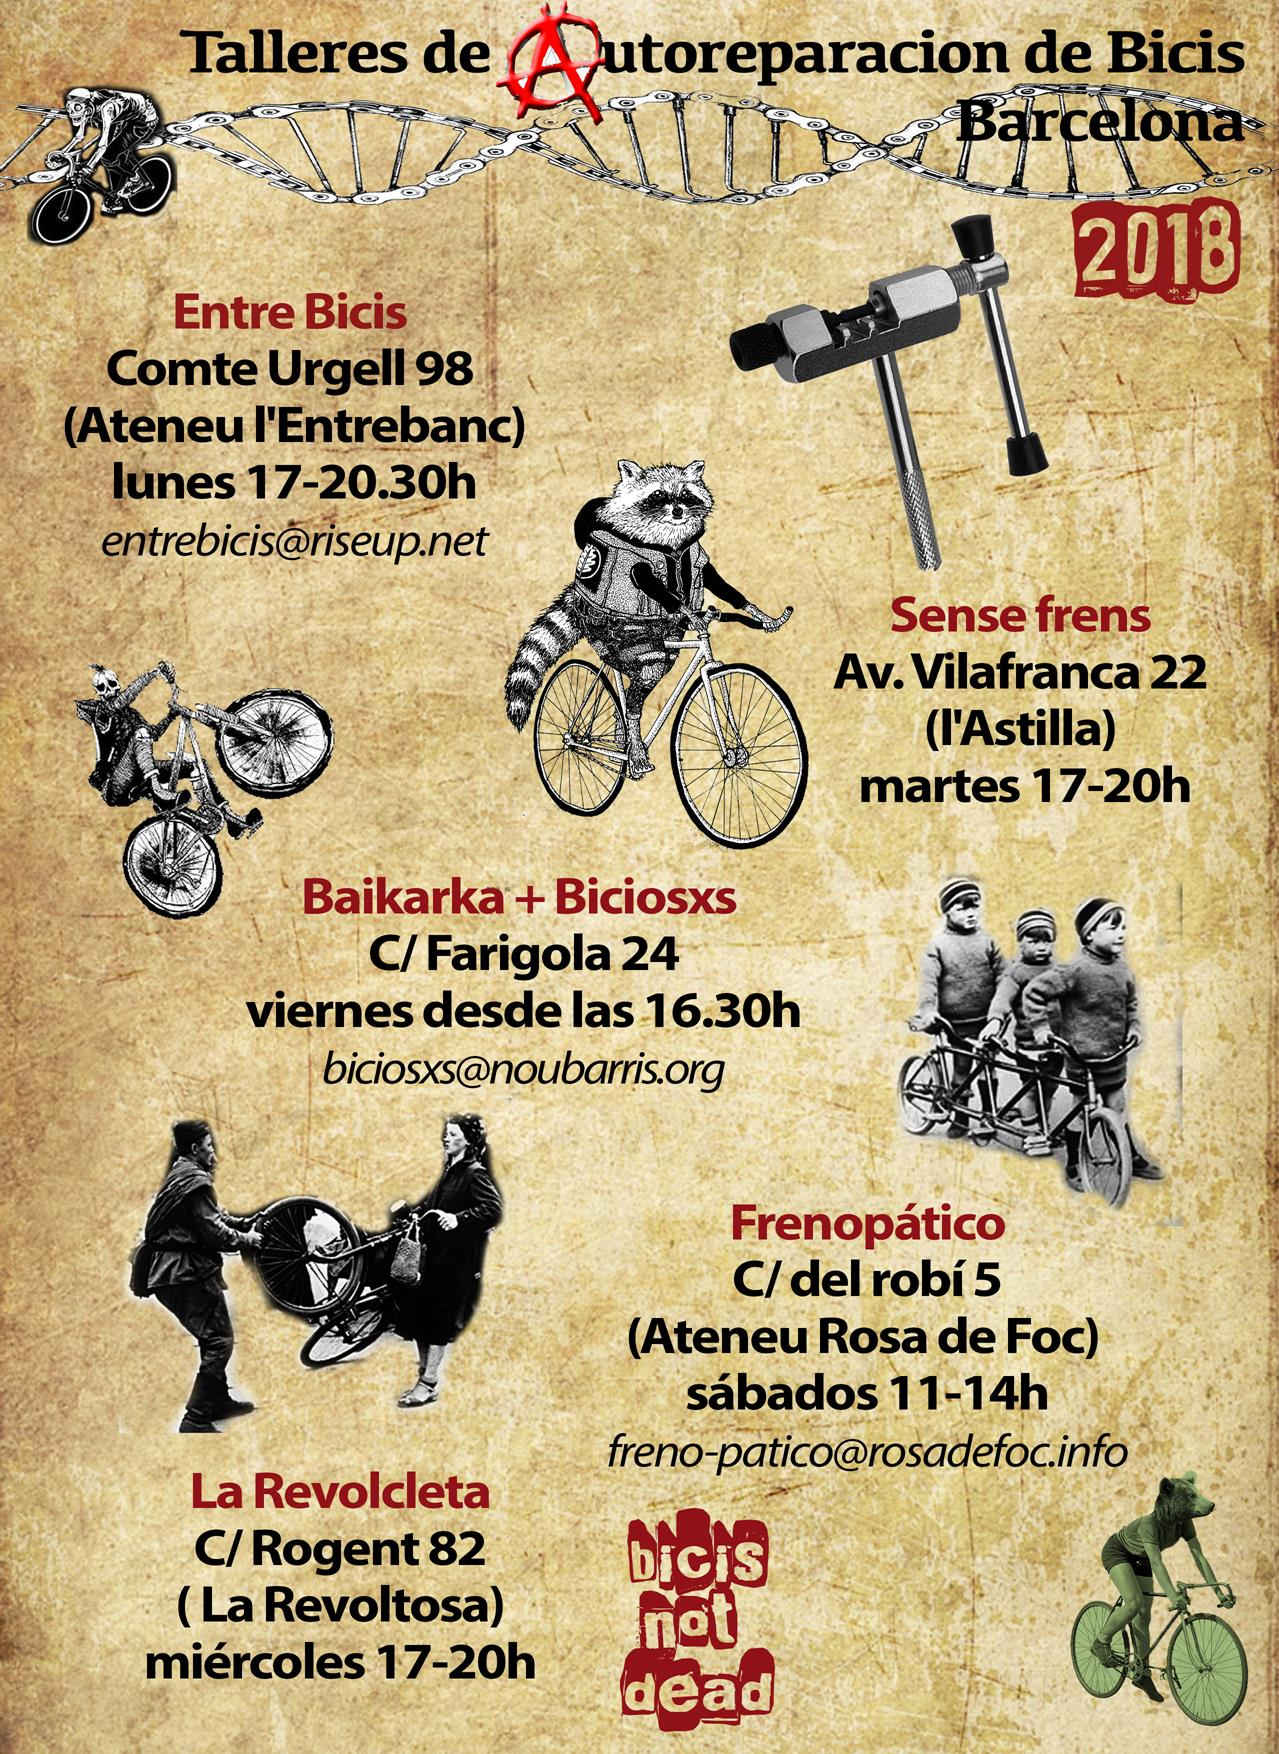 bici-talleres-autogestionados-barna-2018-red